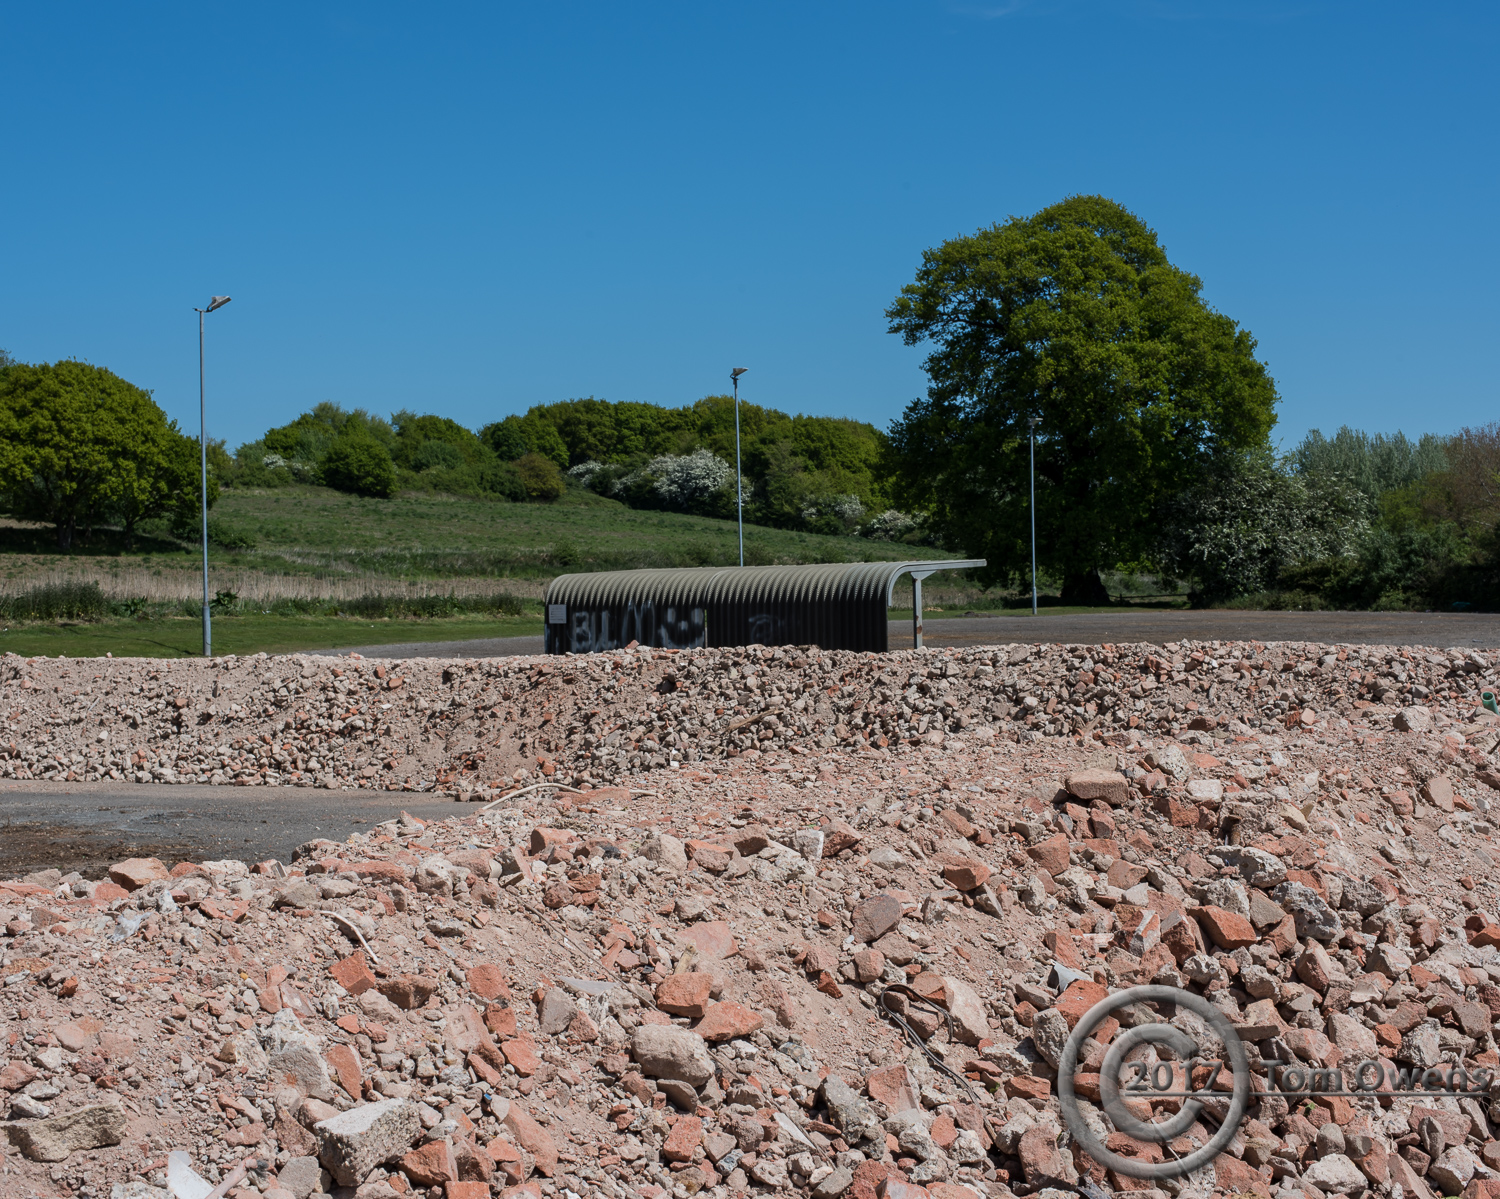 Rubble bunds with inaccessible bike shed